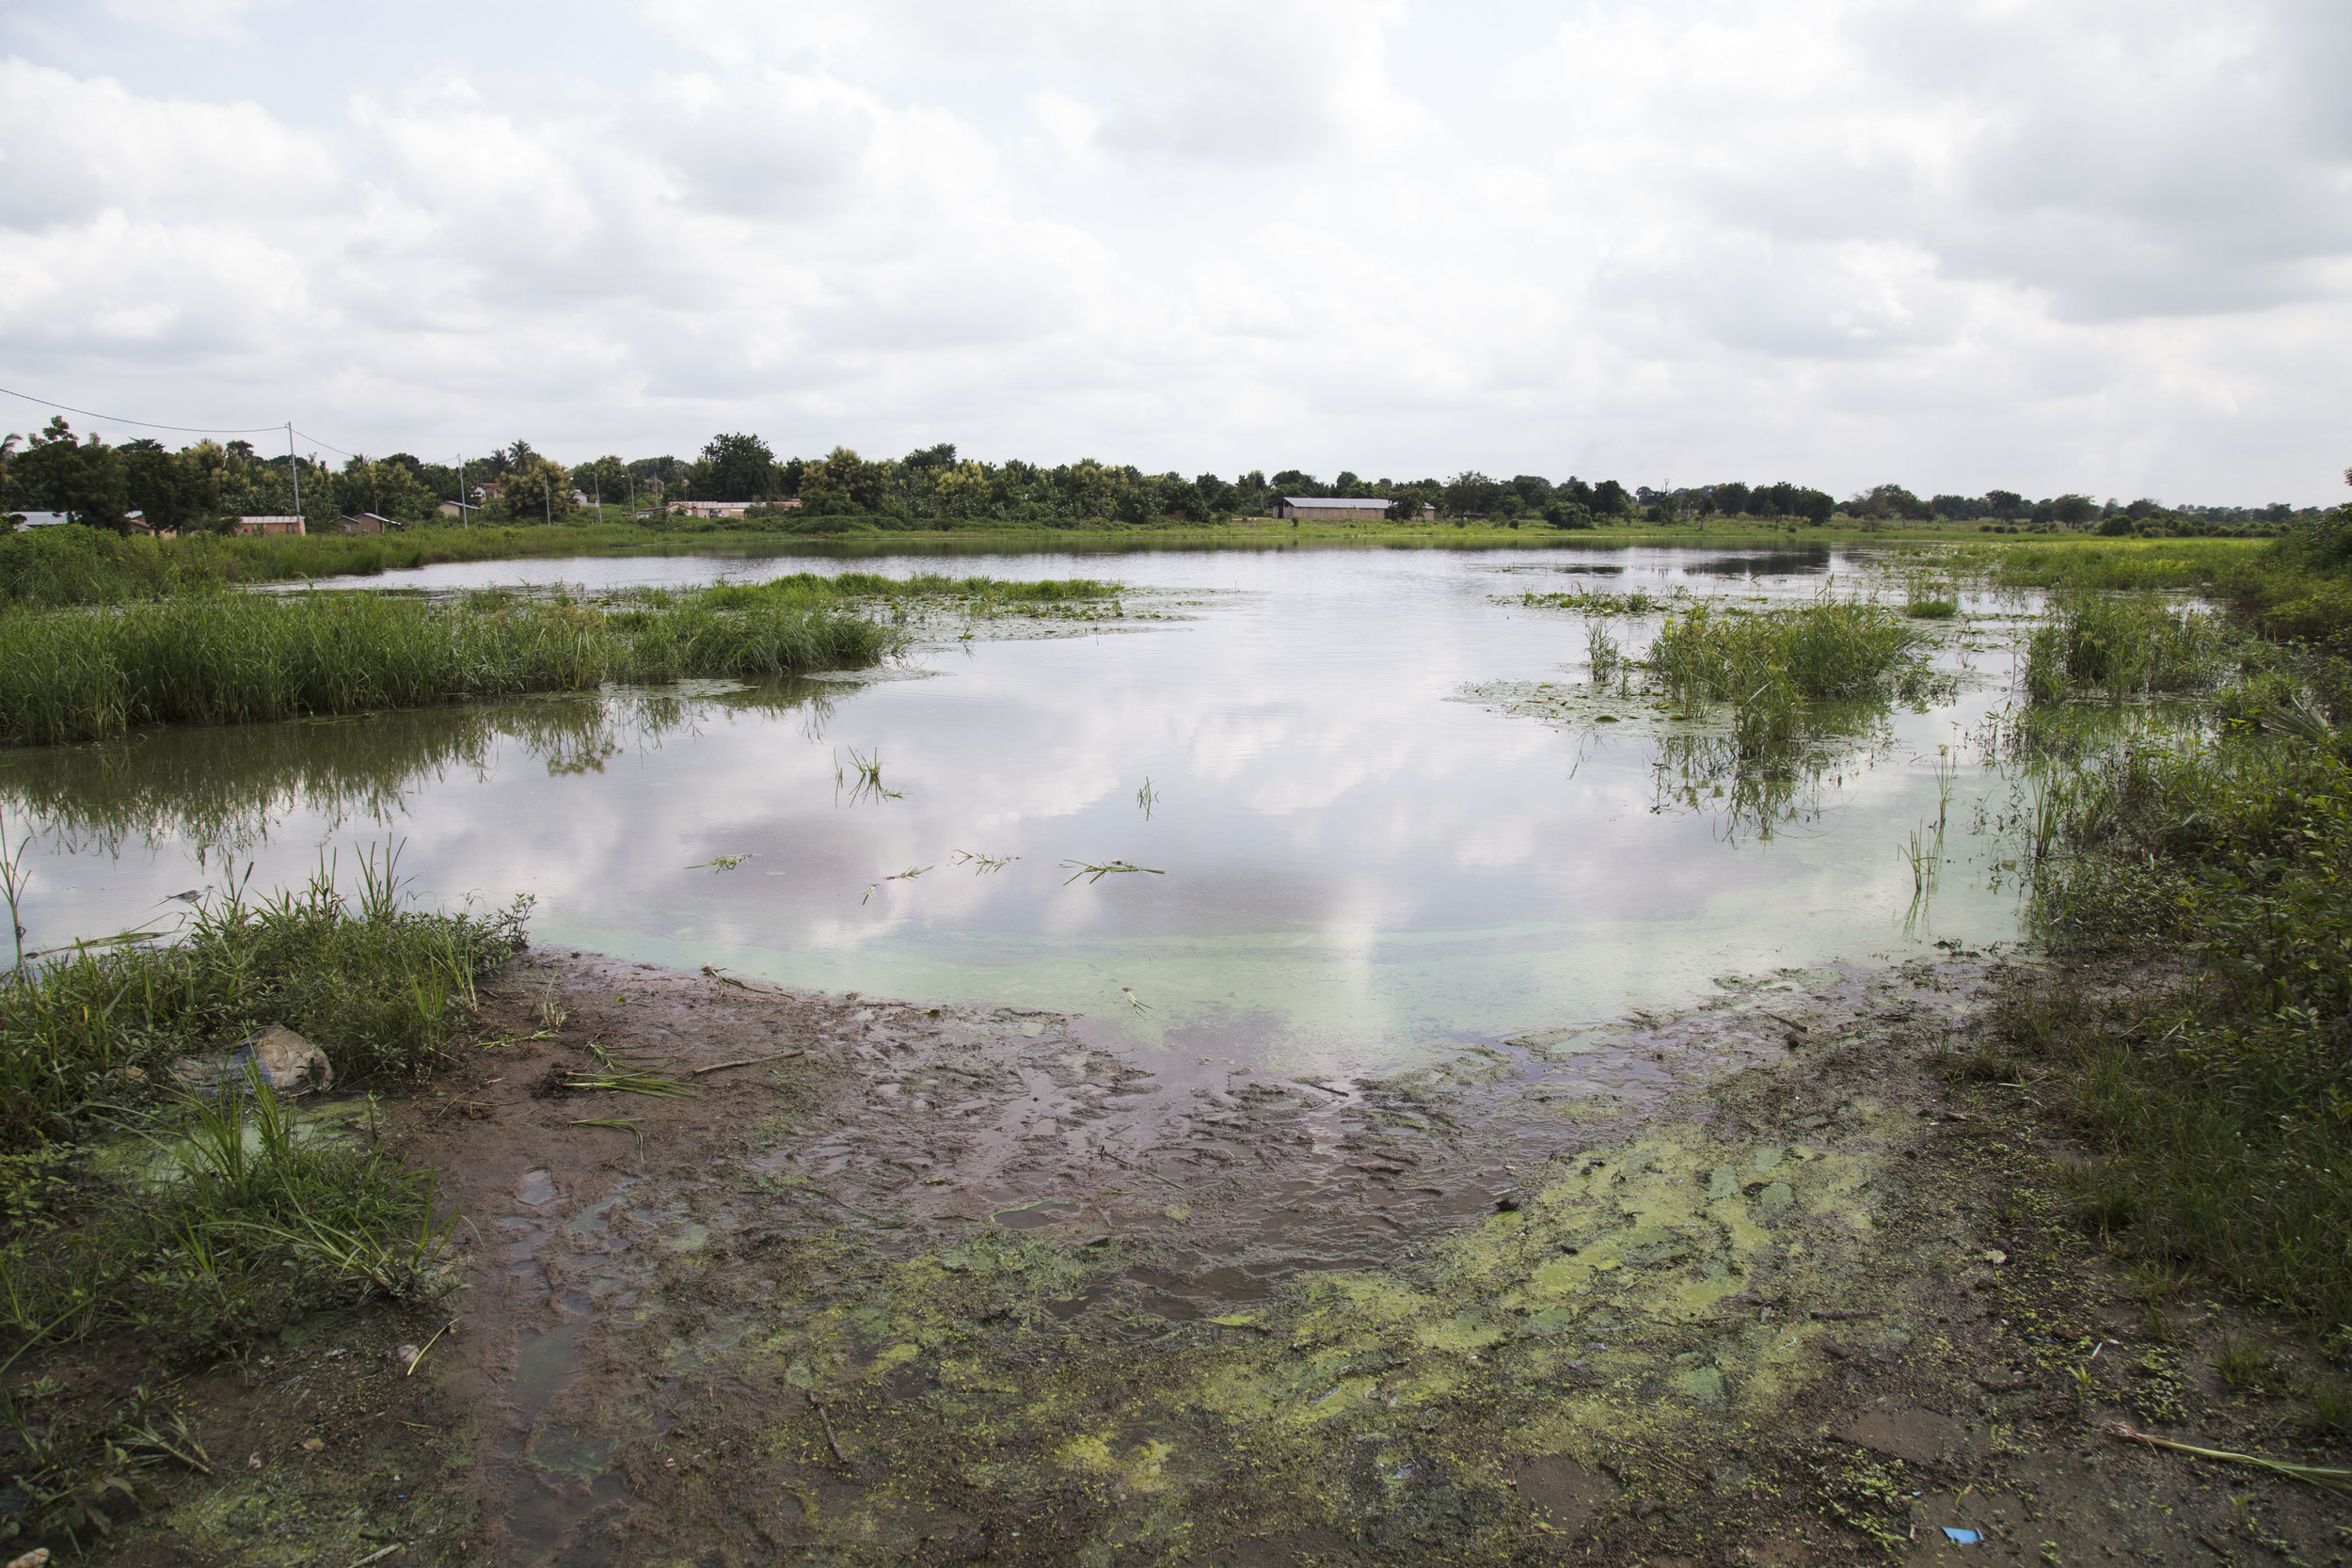 Here is an example of a dirty lake that serves as a water source for surrounding villages